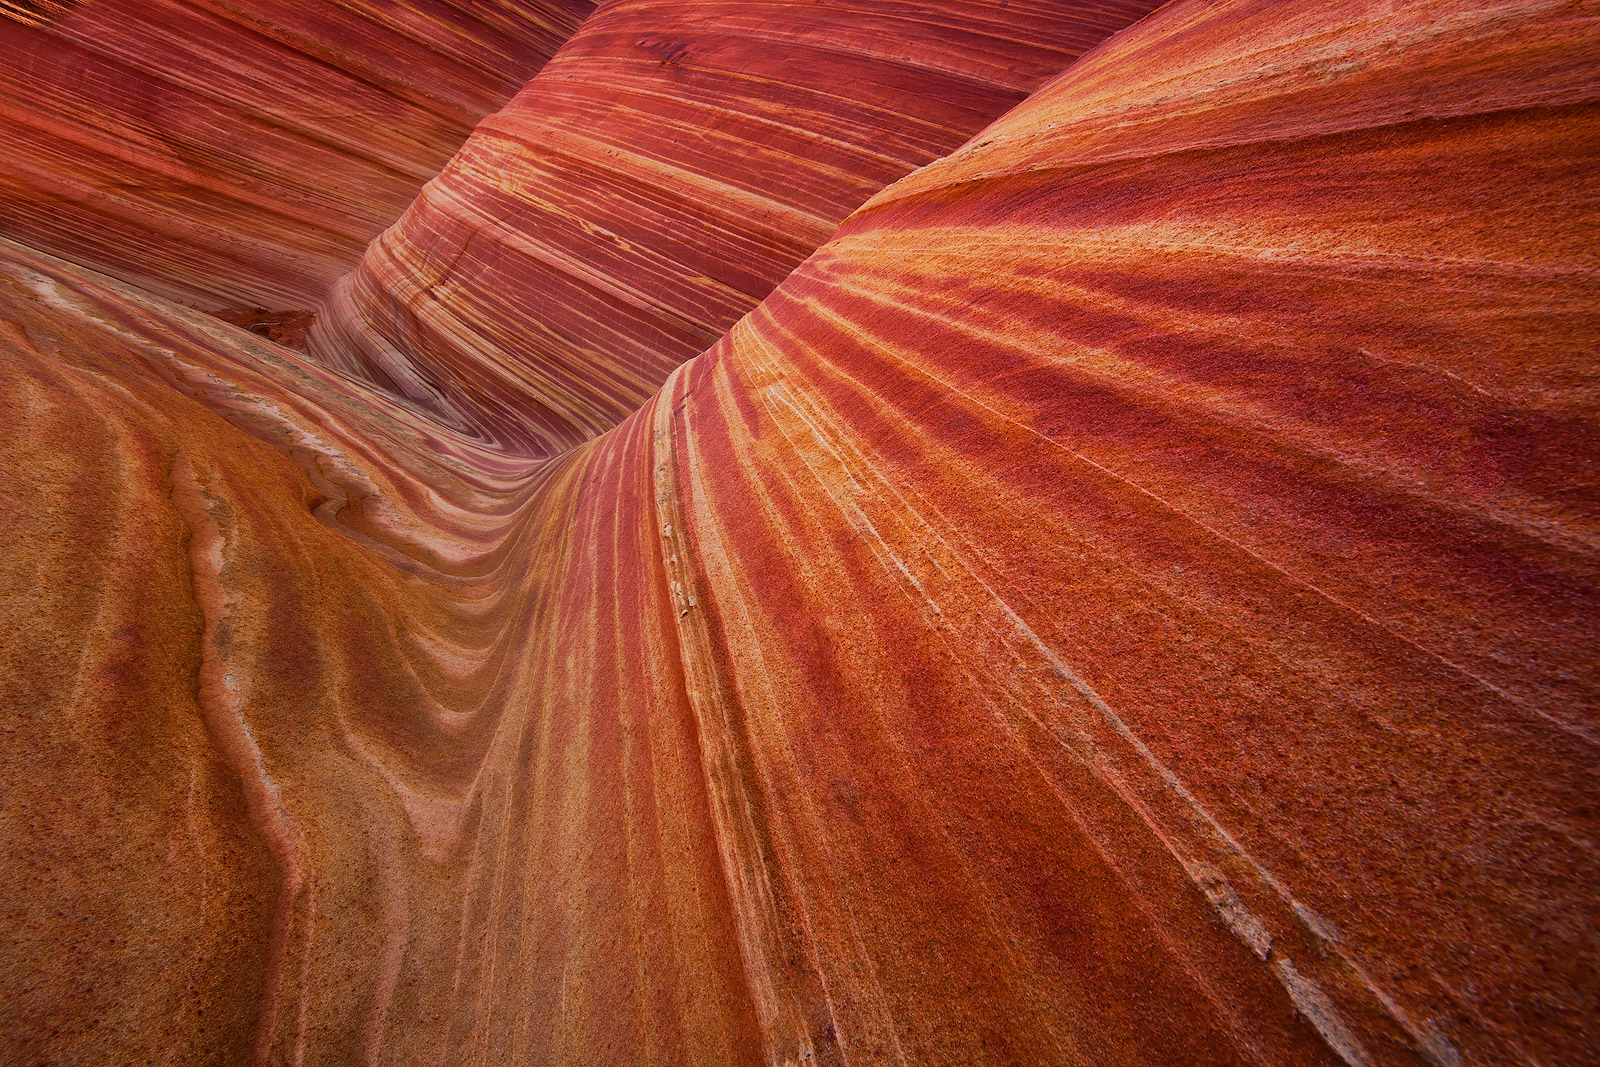 america,arizona,coyote buttes,horizontal,monument,national monument,navajo,navajo nation,navajo territory,north america,paria canyon,rock,sandstone,southwest,the wave,united states,us,usa,utah,vermill, photo